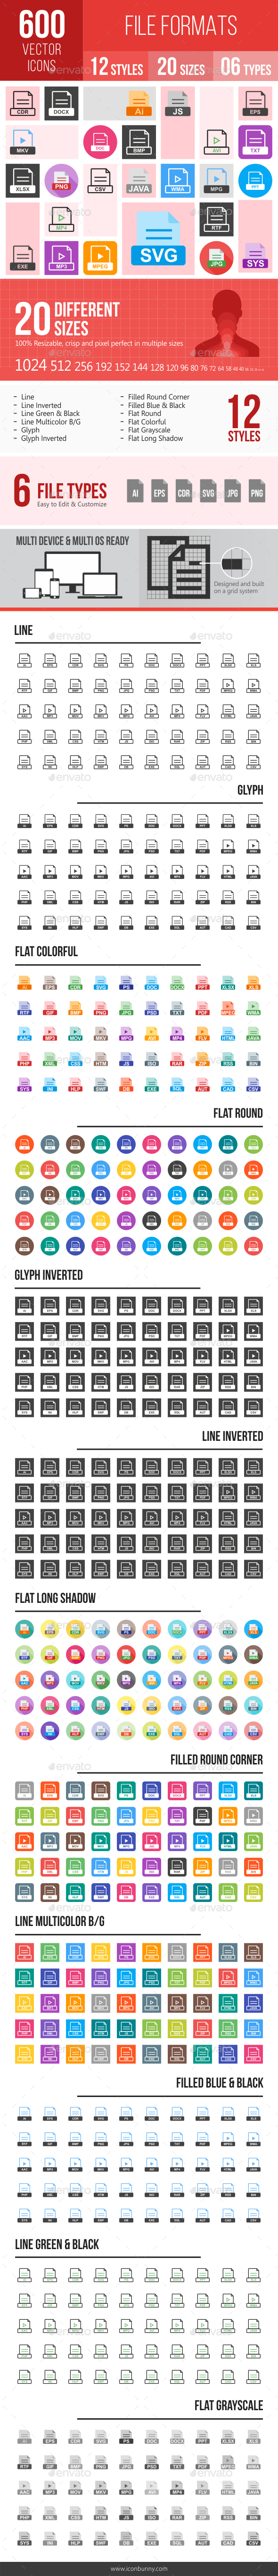 File Formats Icons - Icons